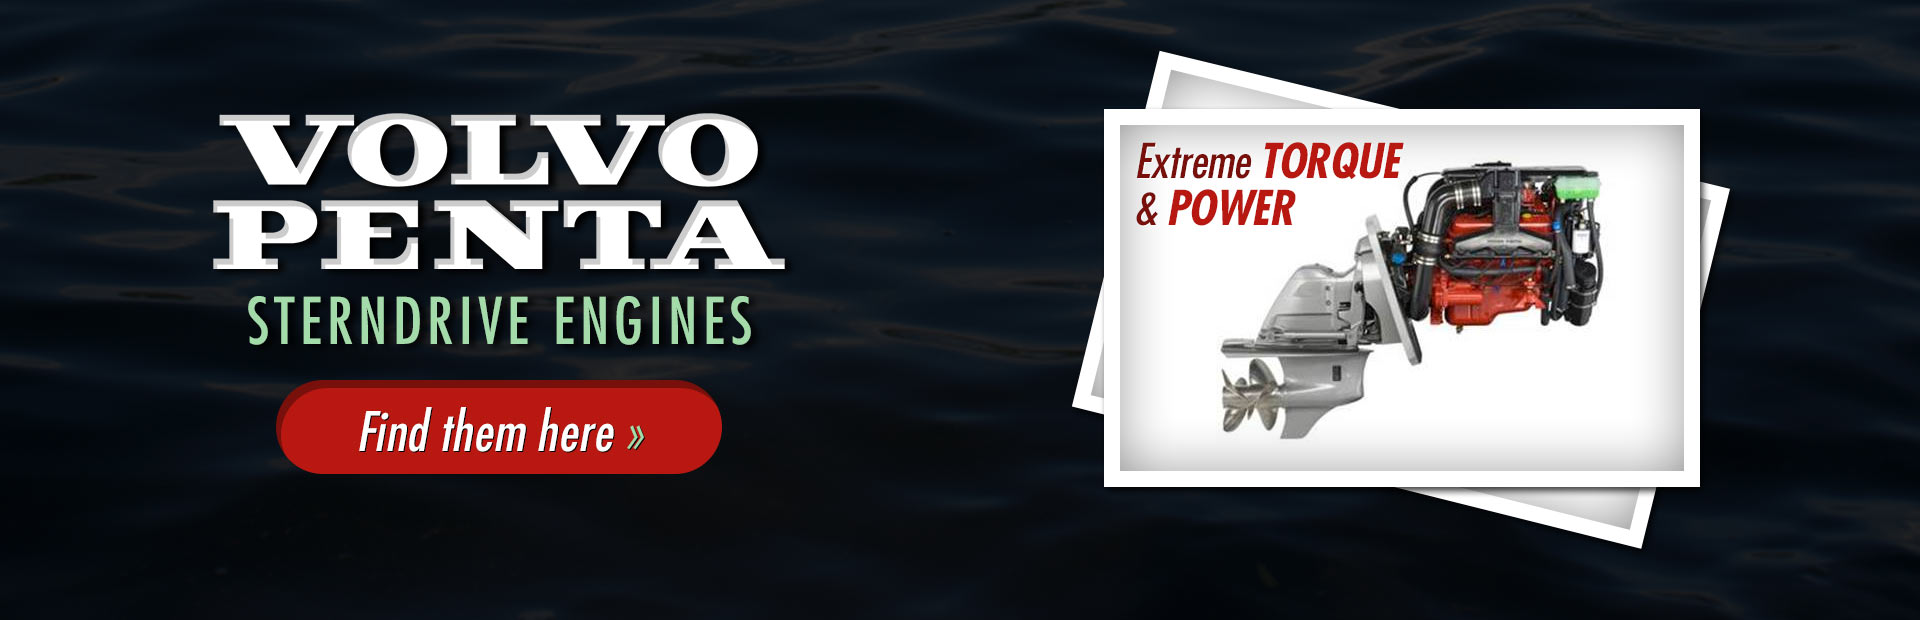 Volvo Penta Sterndrive Engines: Click here to view the models.